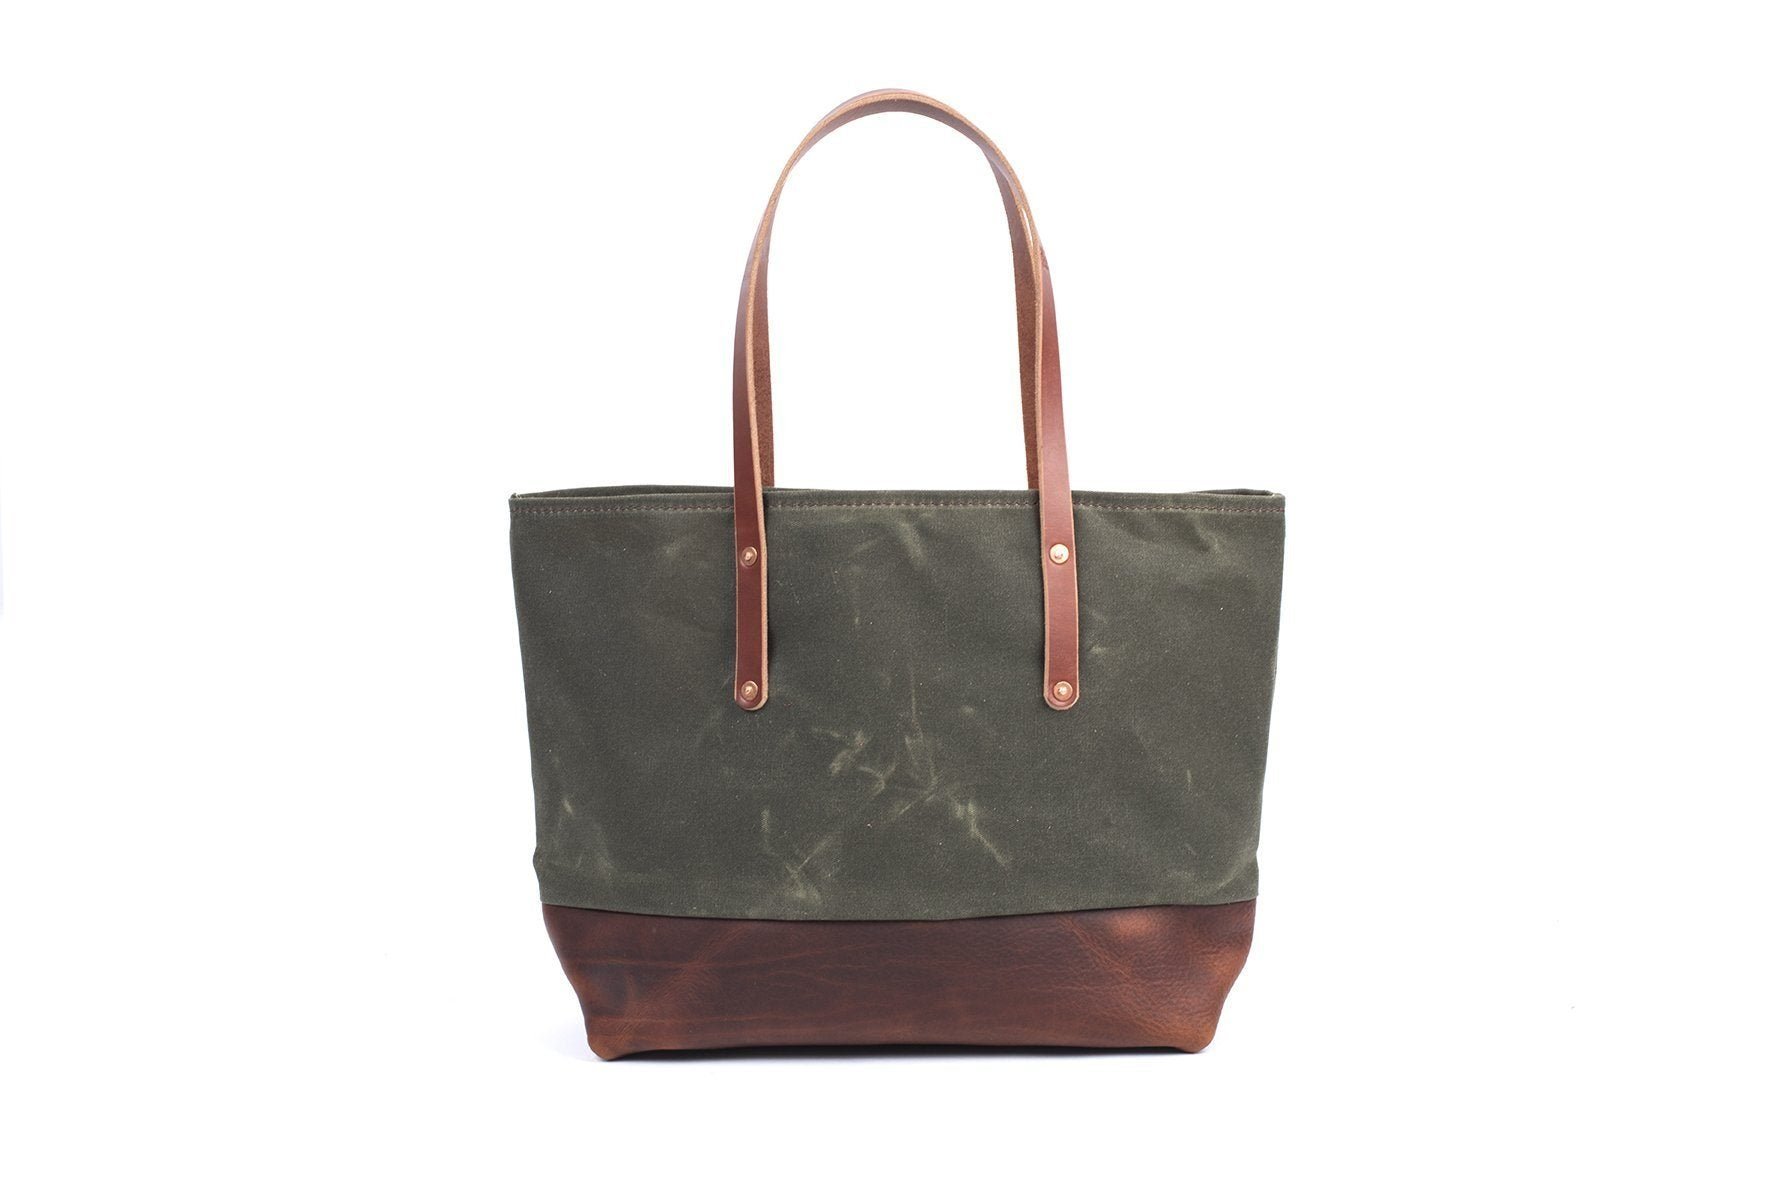 AVERY WAXED CANVAS TOTE BAG - LARGE